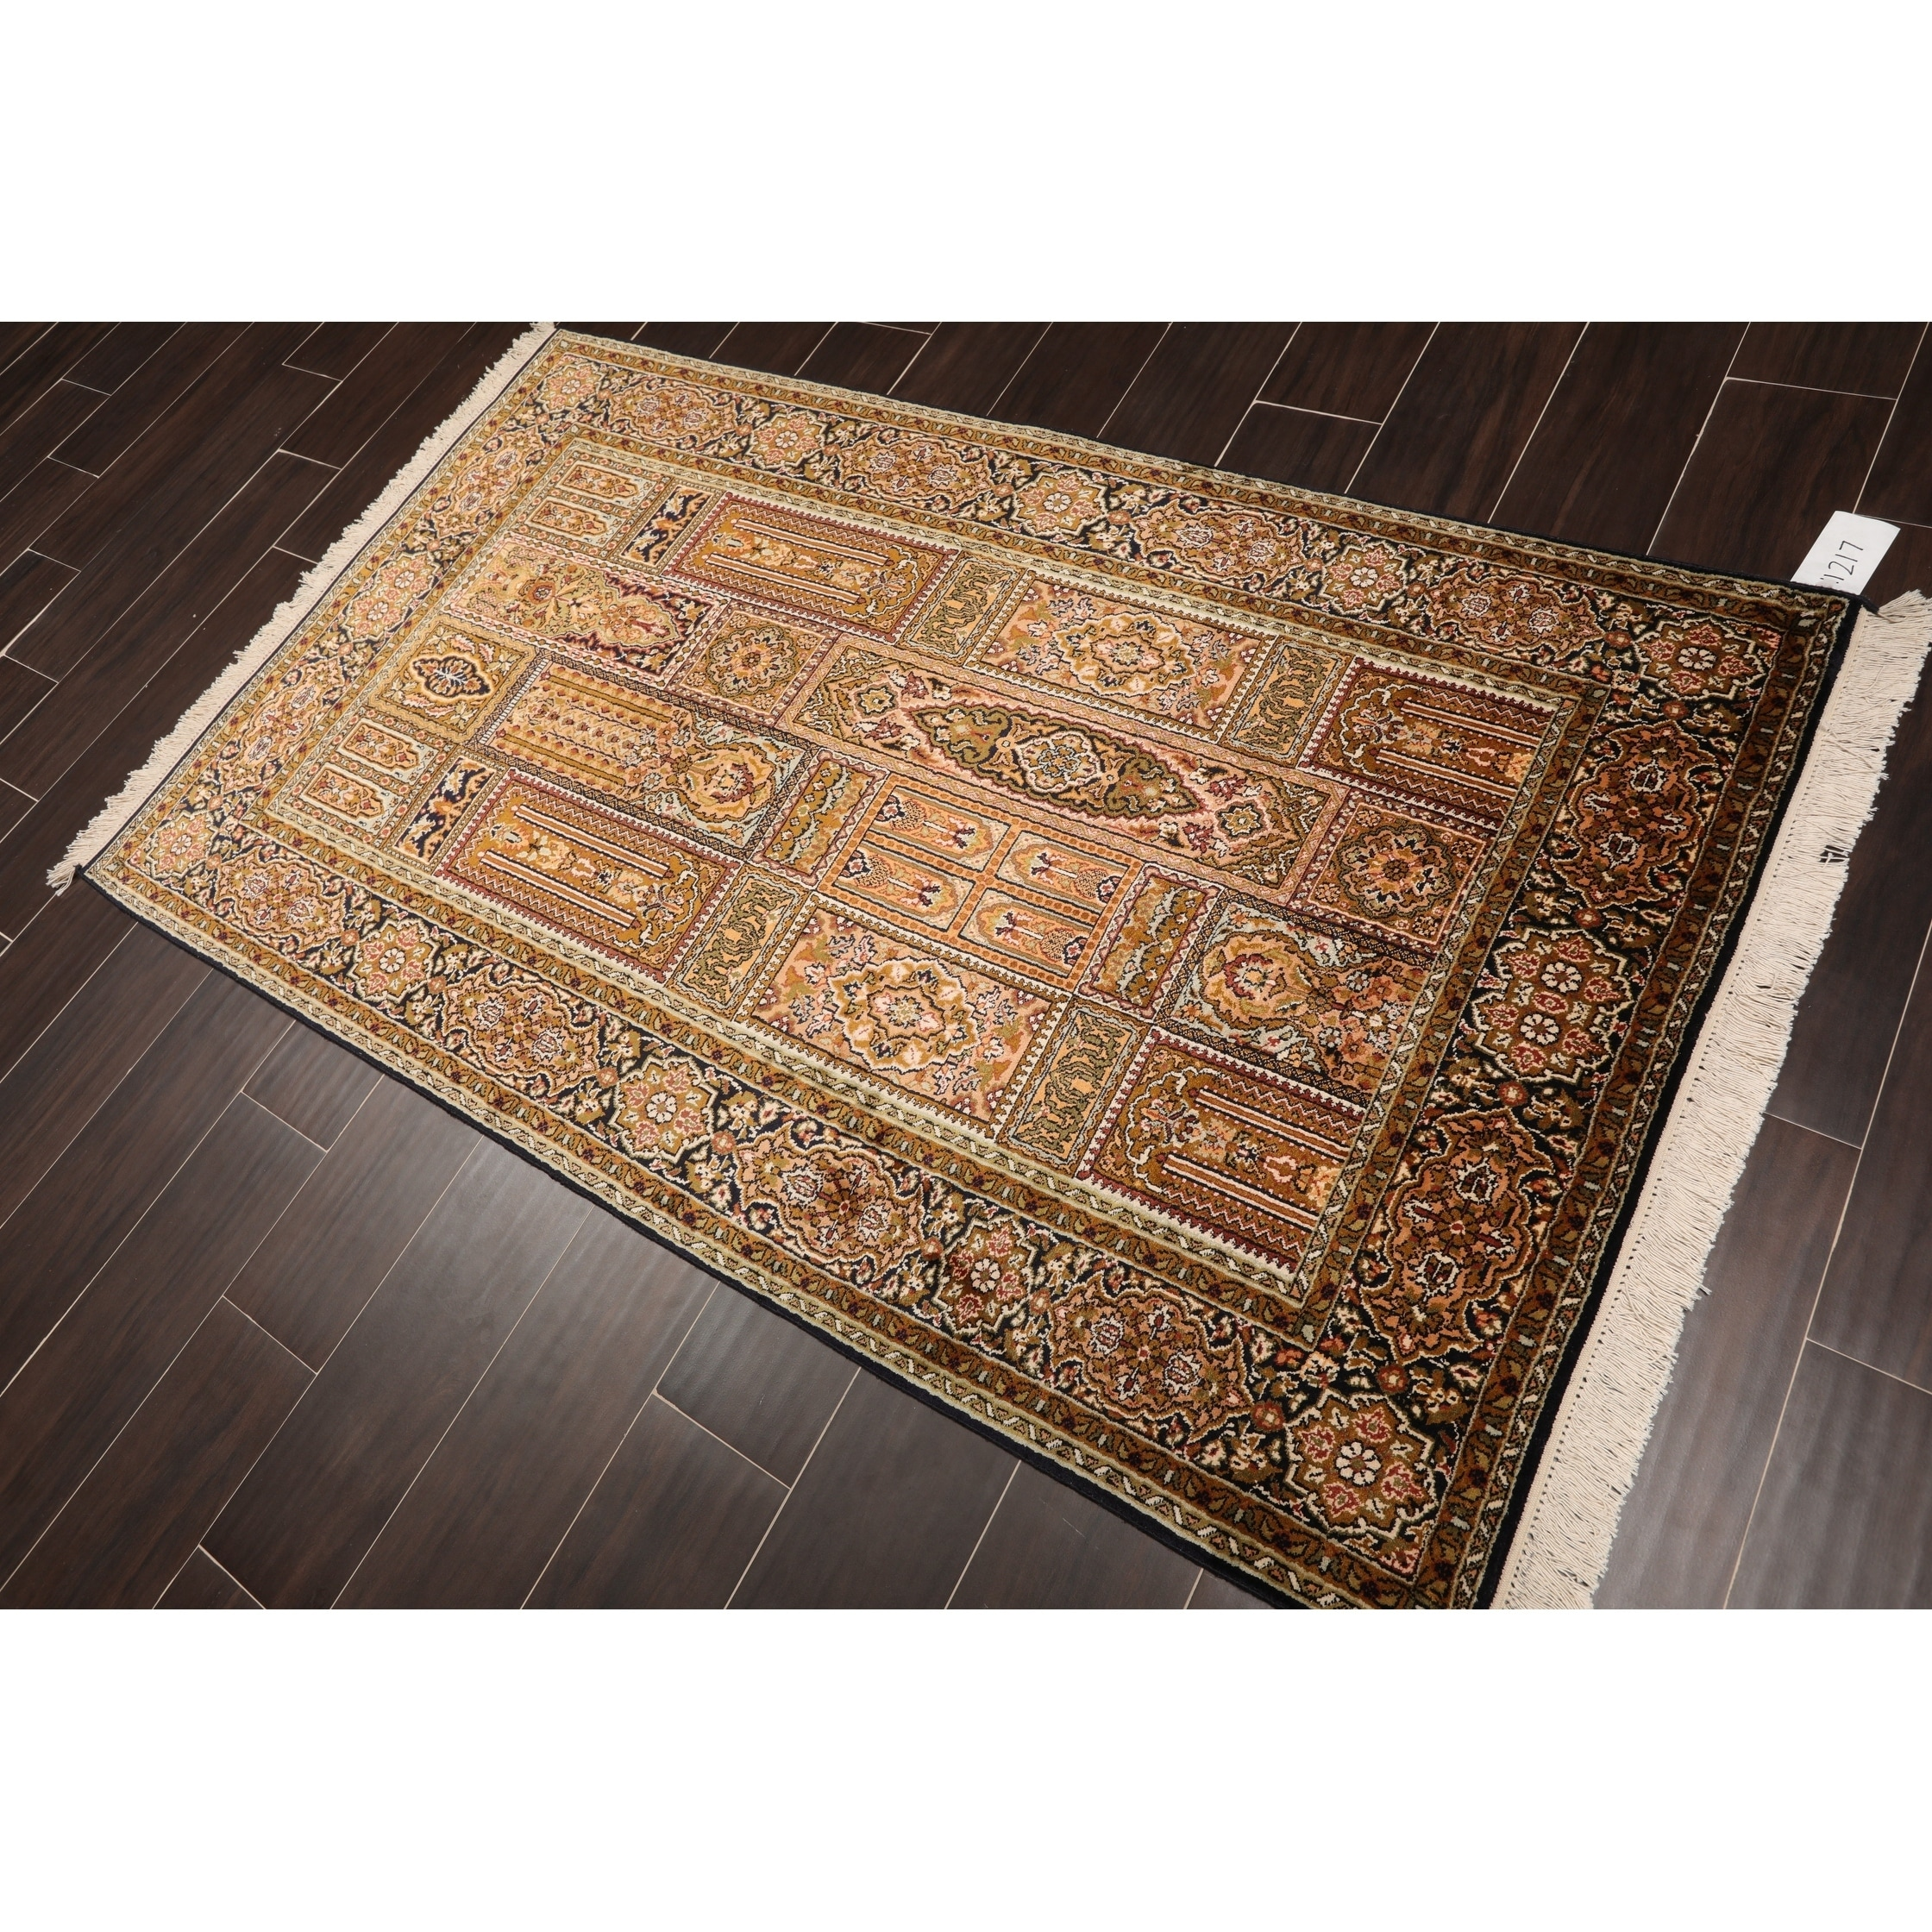 Hand Knotted Multi Panel Kashmir